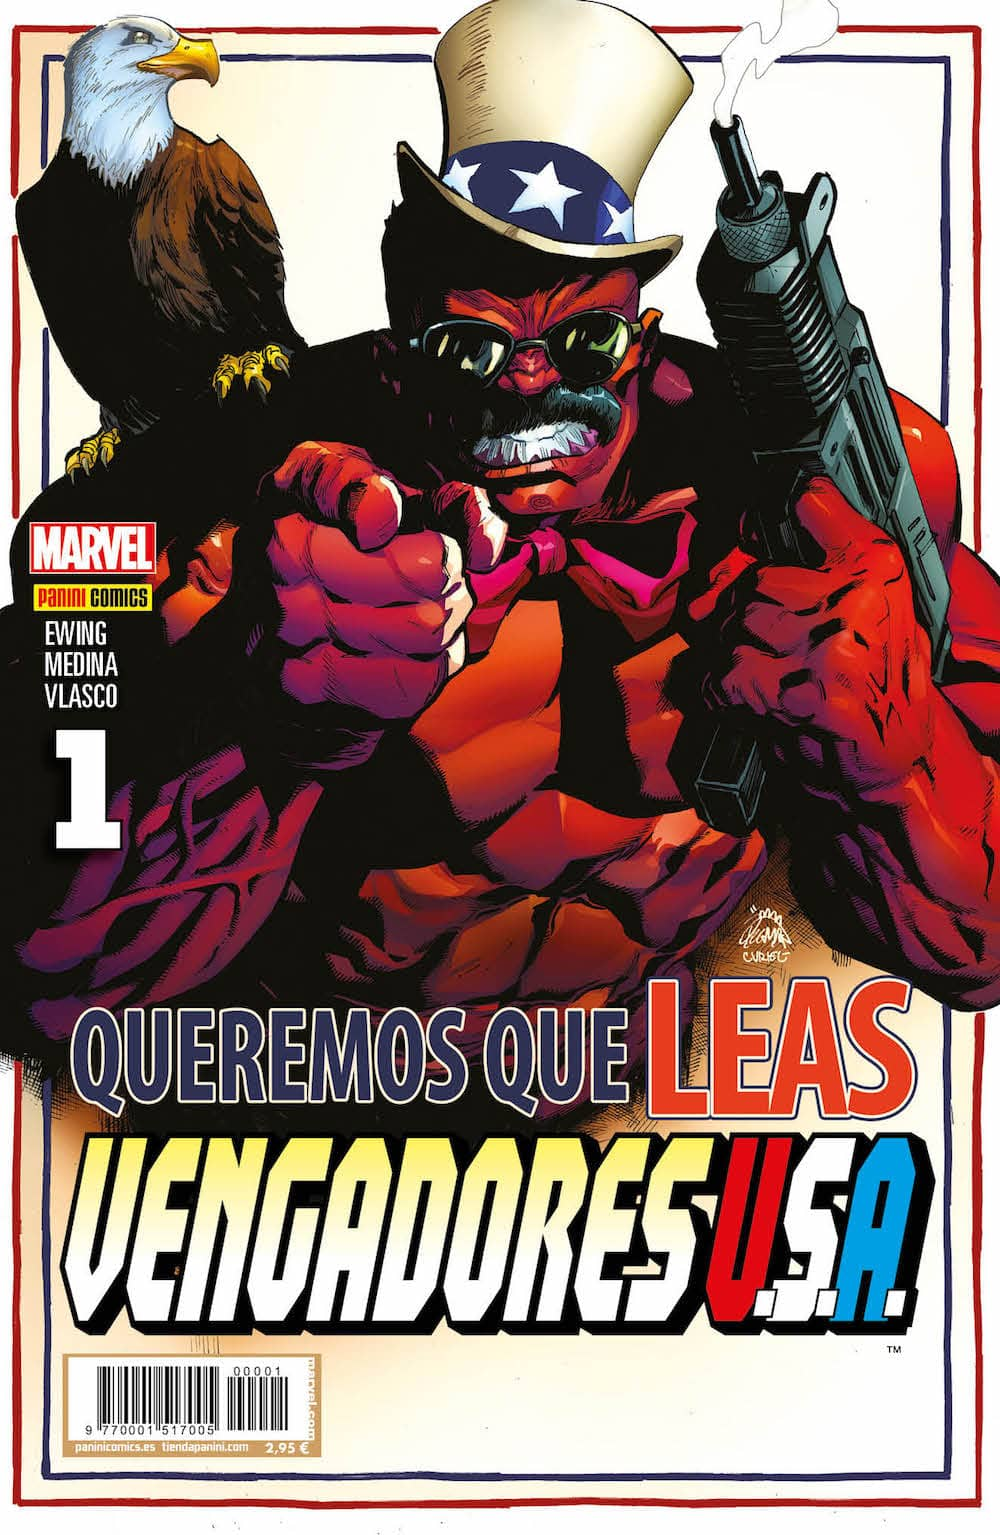 VENGADORES USA 01 (PORTADA ALTERNATIVA)